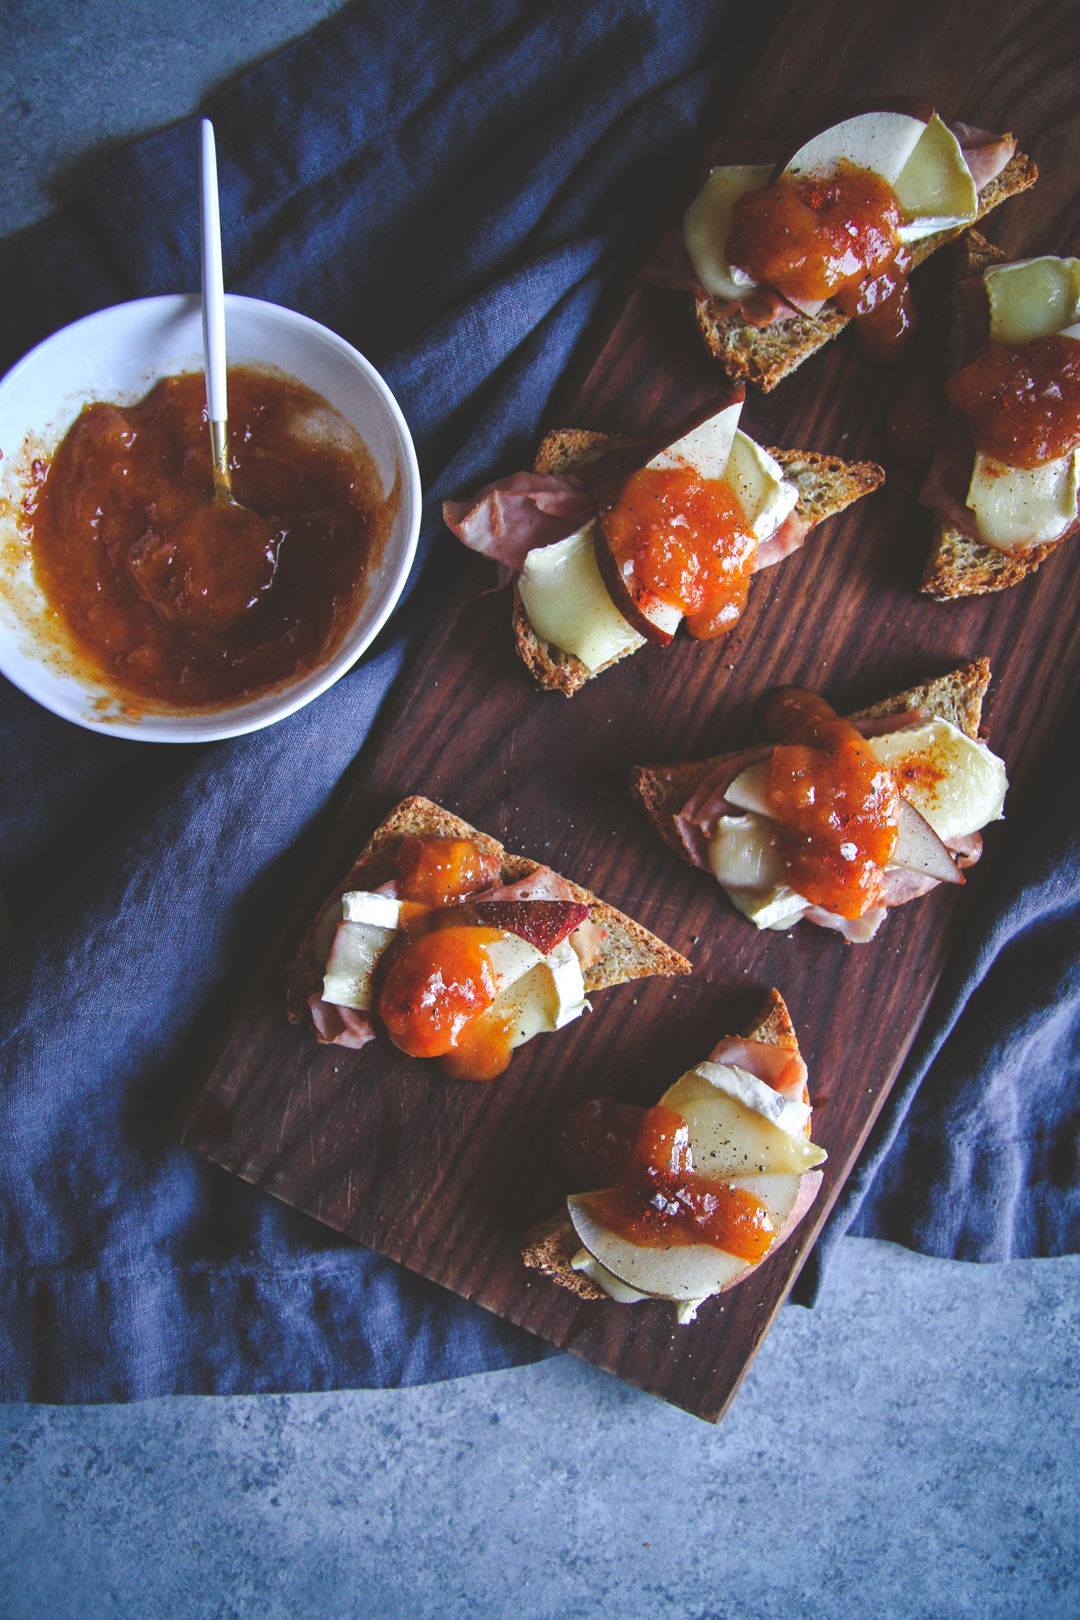 The best appetizer recipe for ham and brie crostini toasts